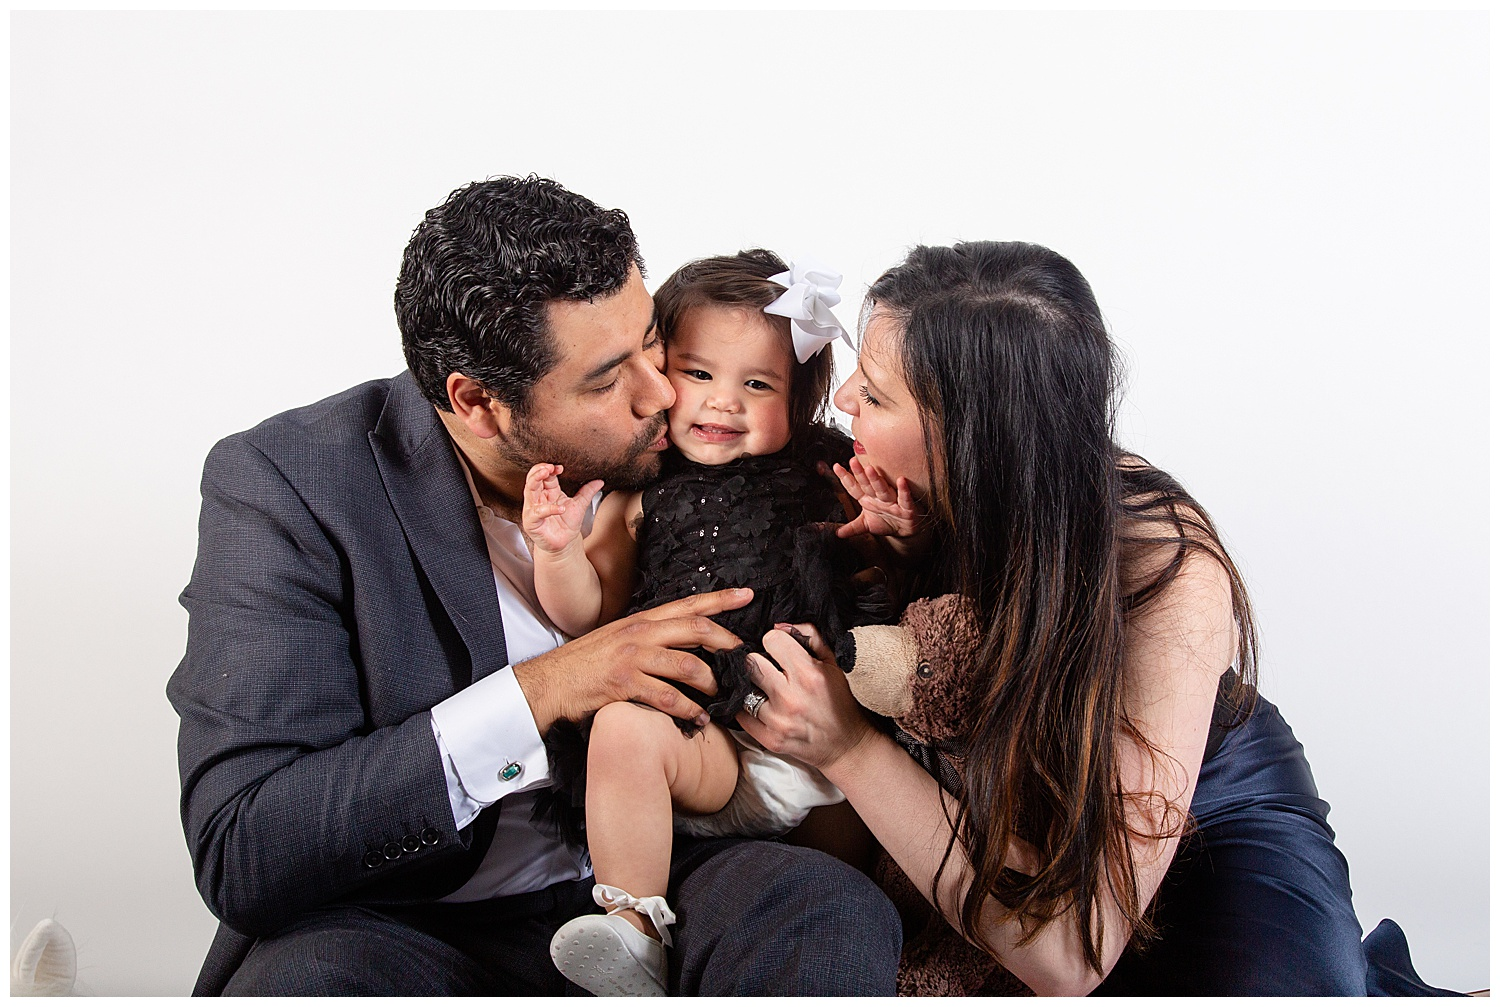 emily-belson-photography-dc-family-photographer-10.jpg